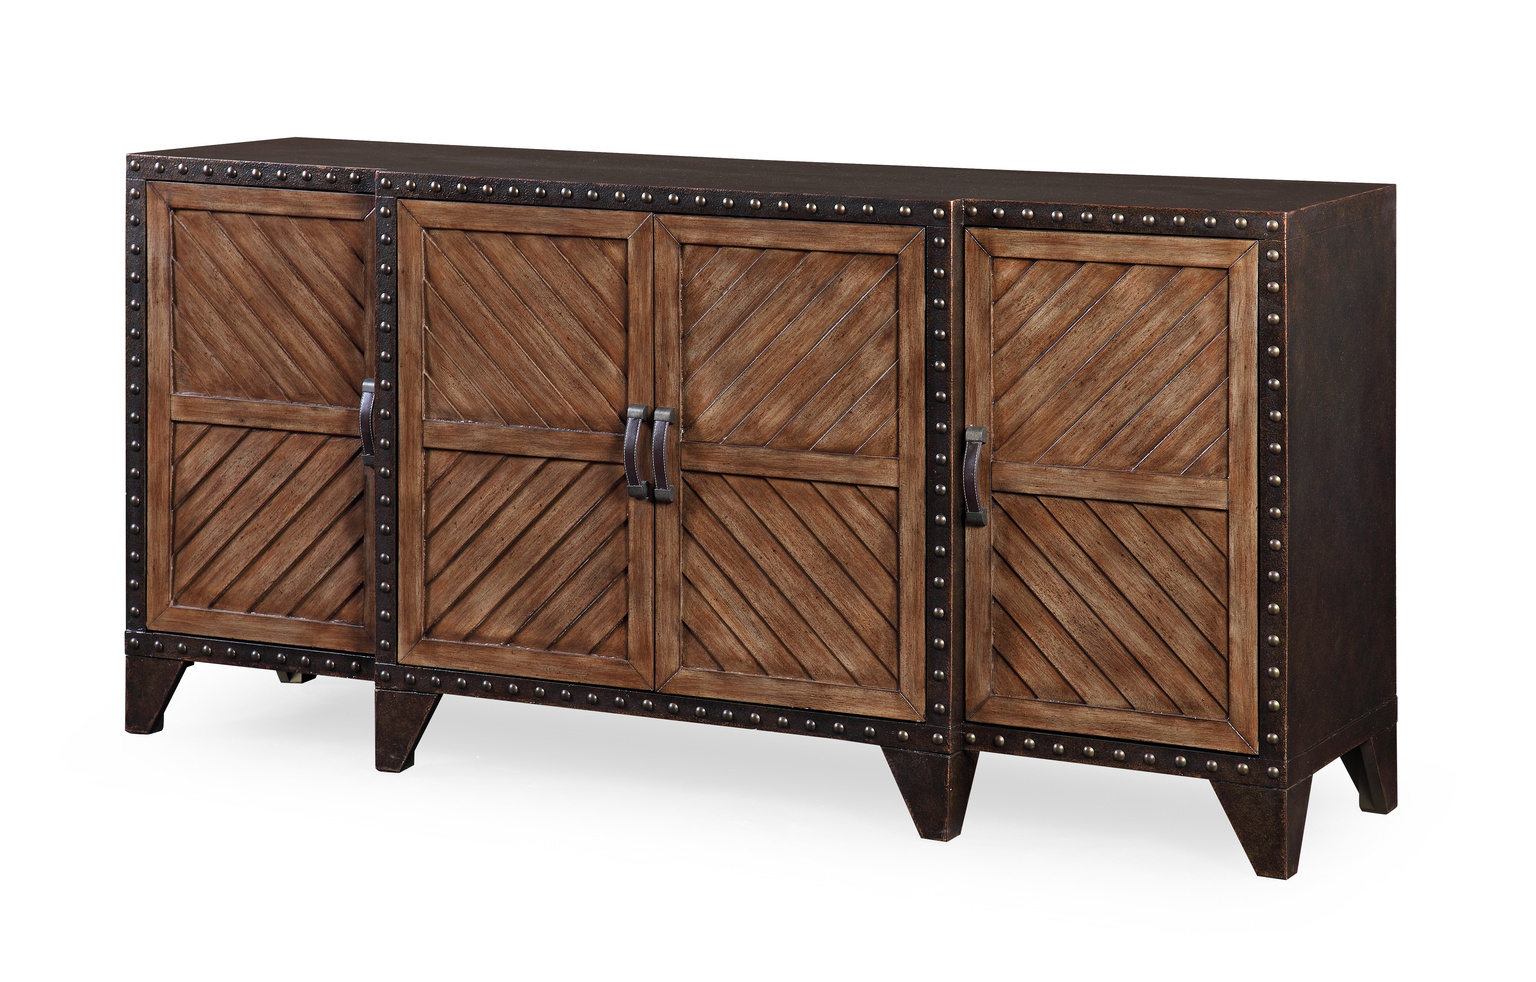 Widely Used Sideboards, Cabinets, Shelving Inside Reclaimed Pine & Iron 4 Door Sideboards (View 20 of 20)